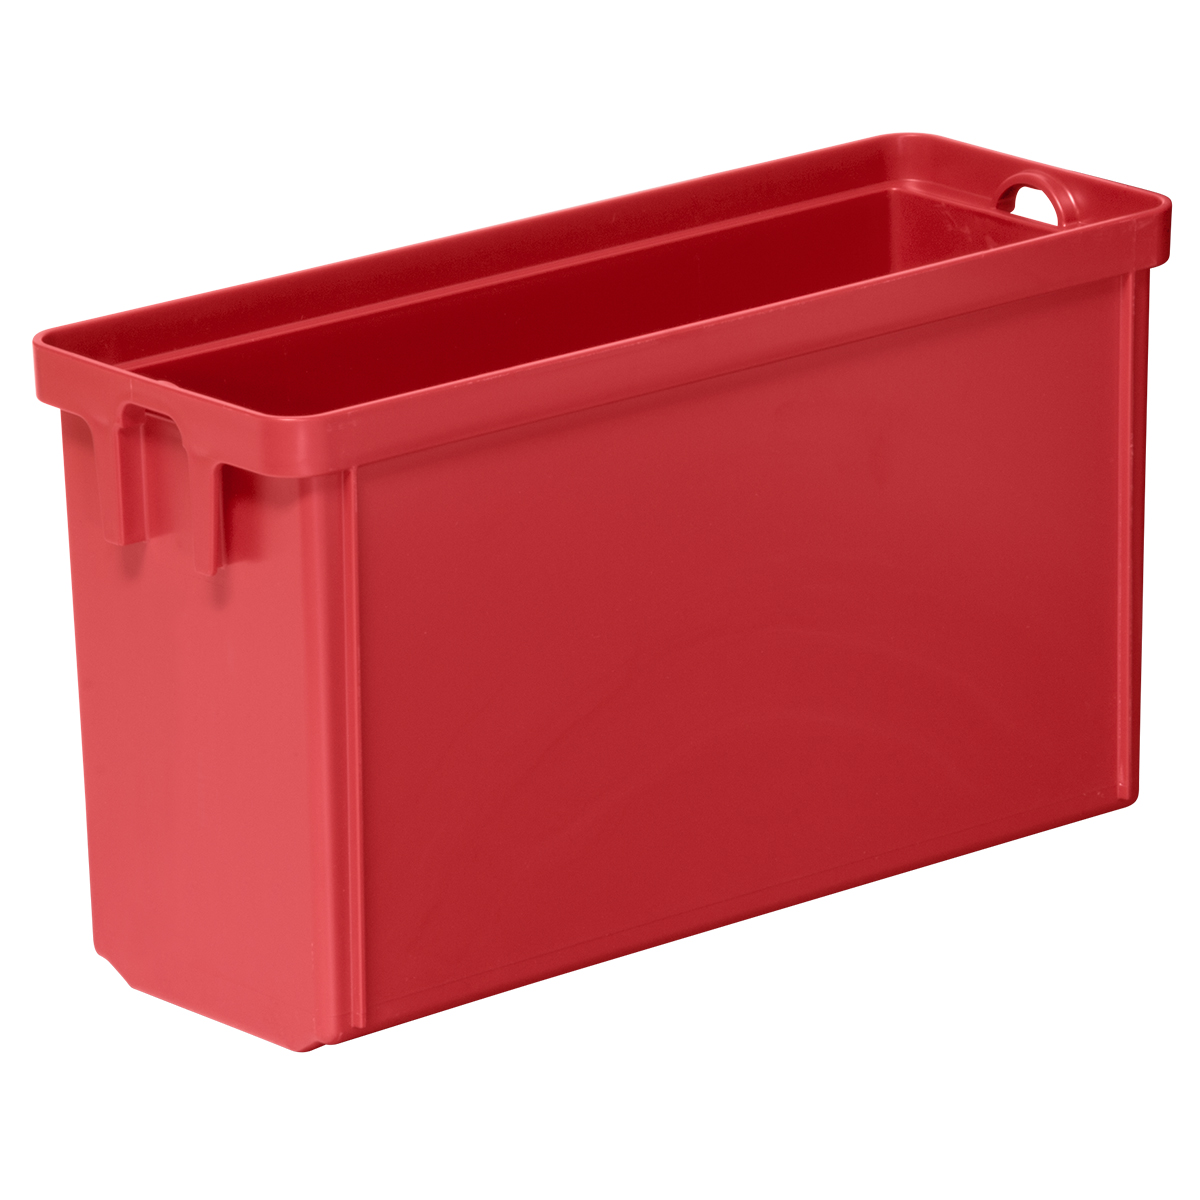 Multi-Load Tote 1/4 Cup, Red (38004RED).  This item sold in carton quantities of 6.